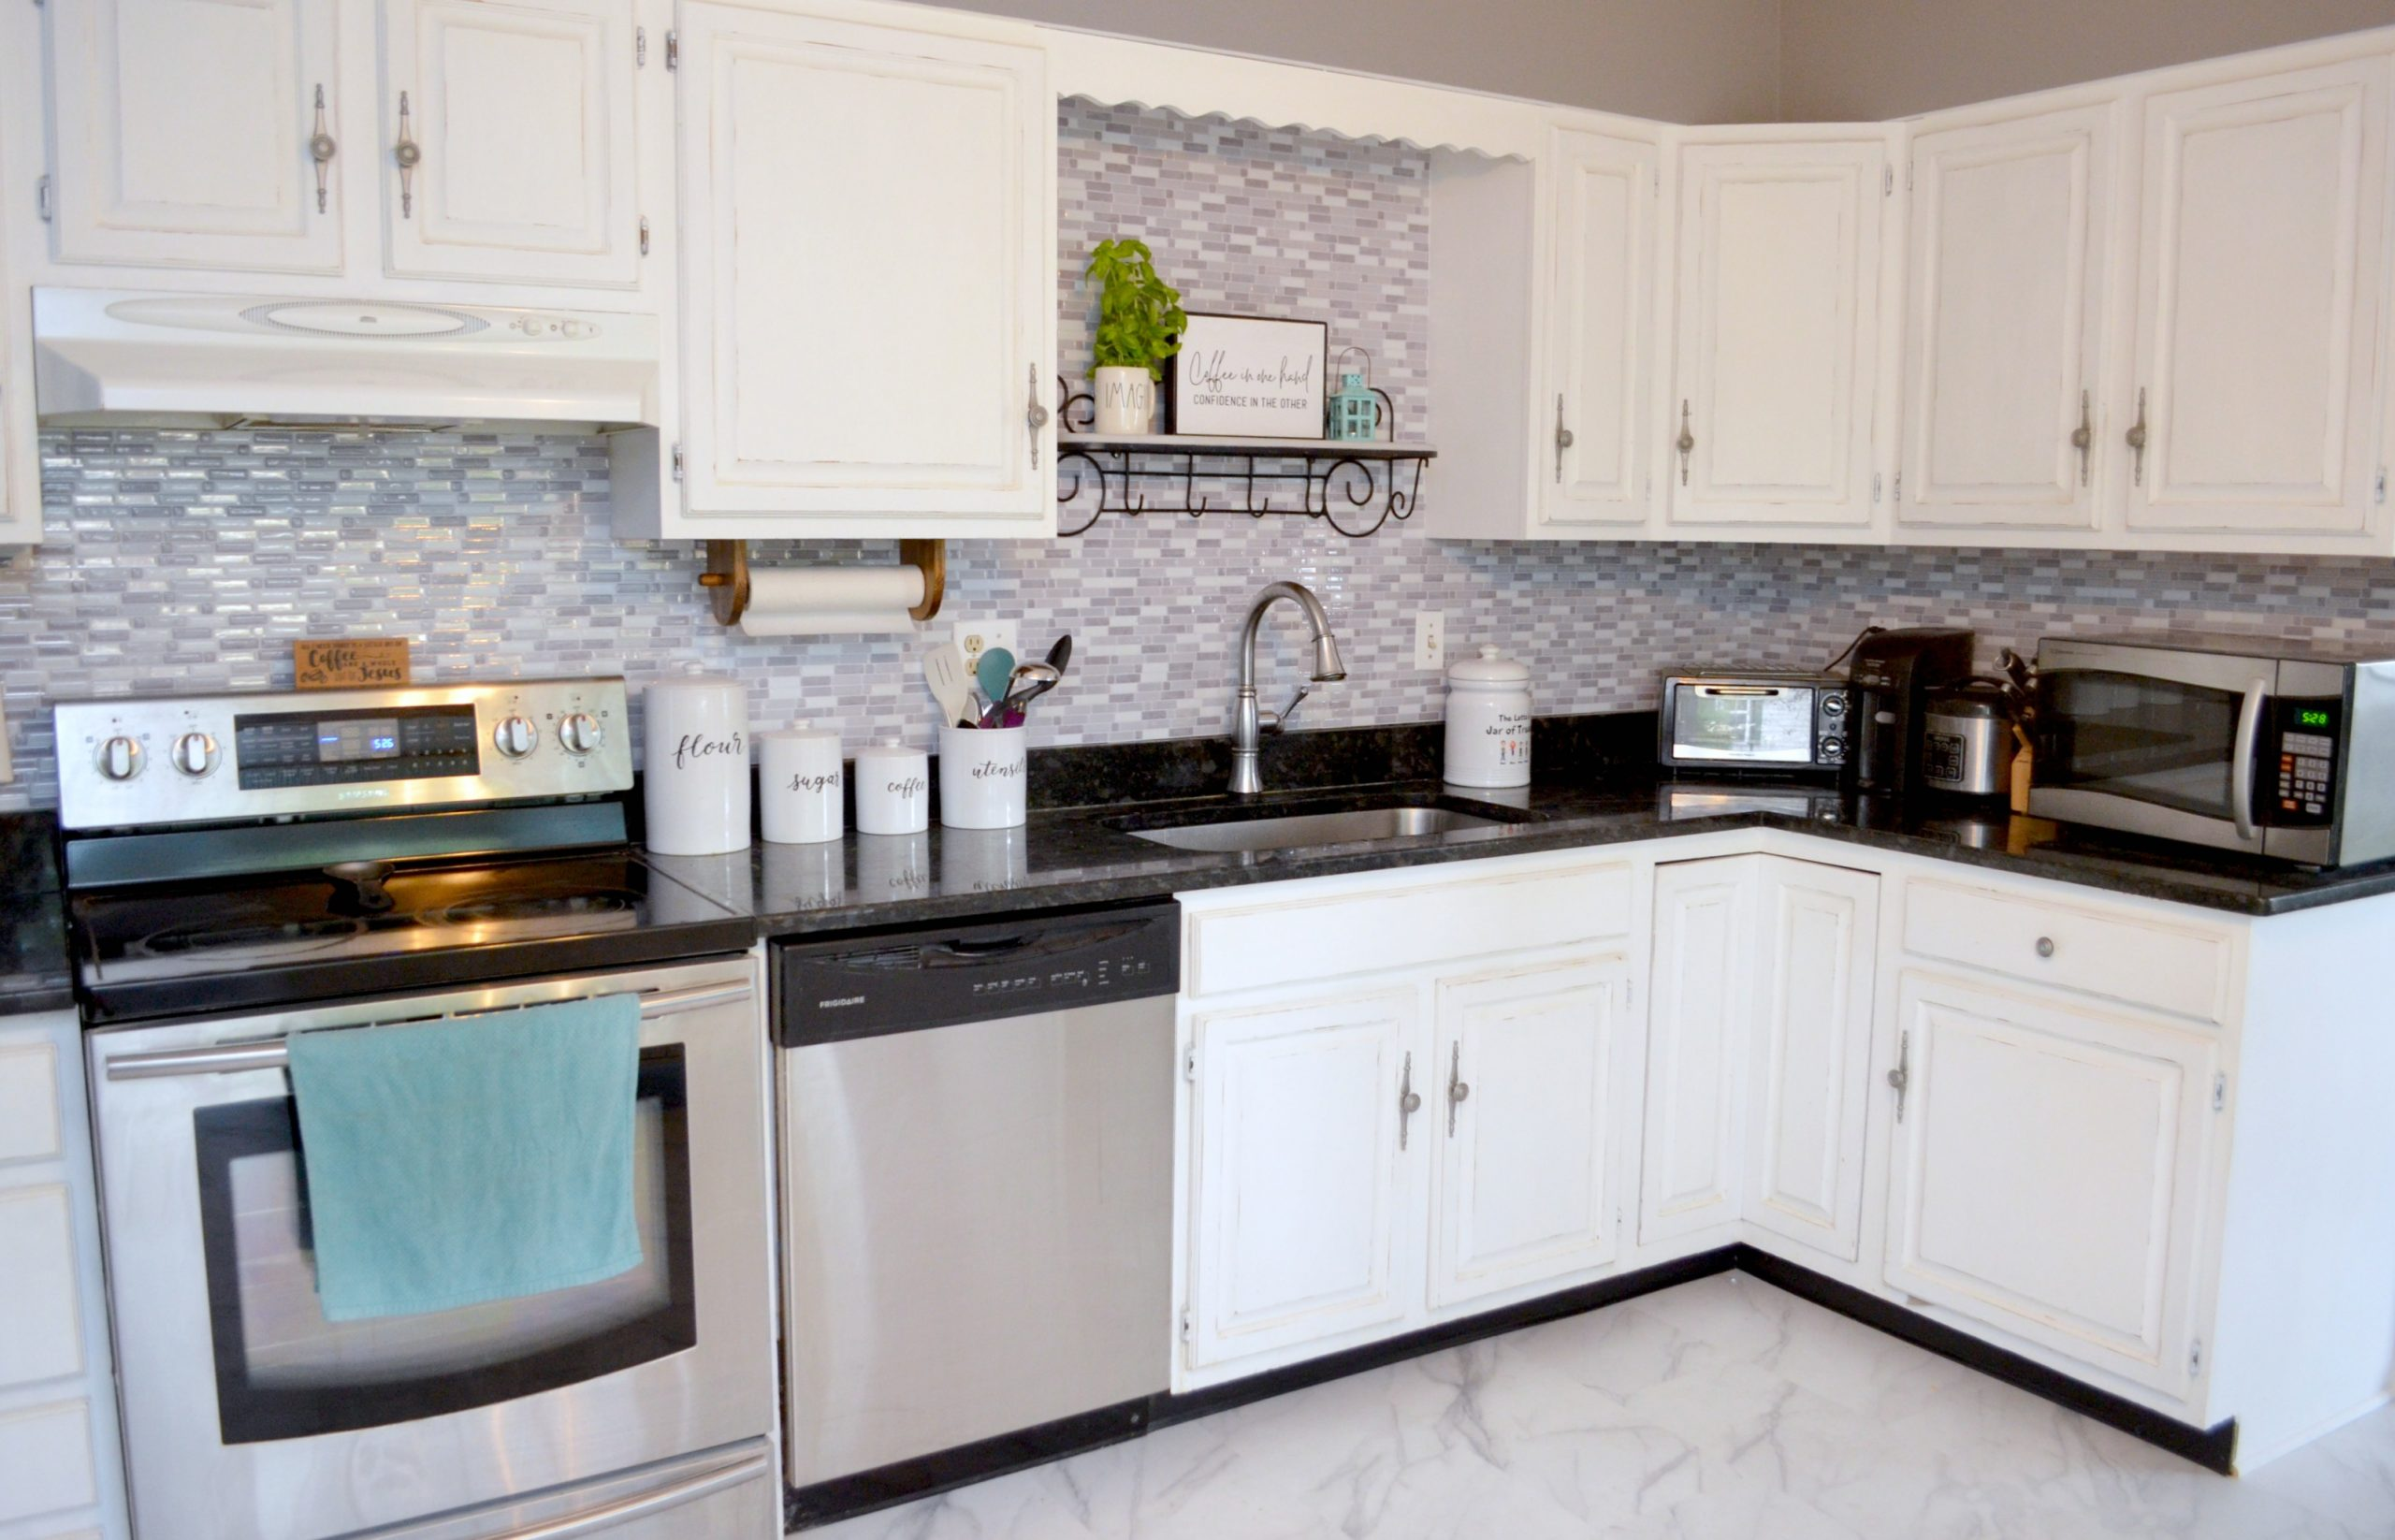 Diy Peel Stick Kitchen Backsplash Amy Latta Creations